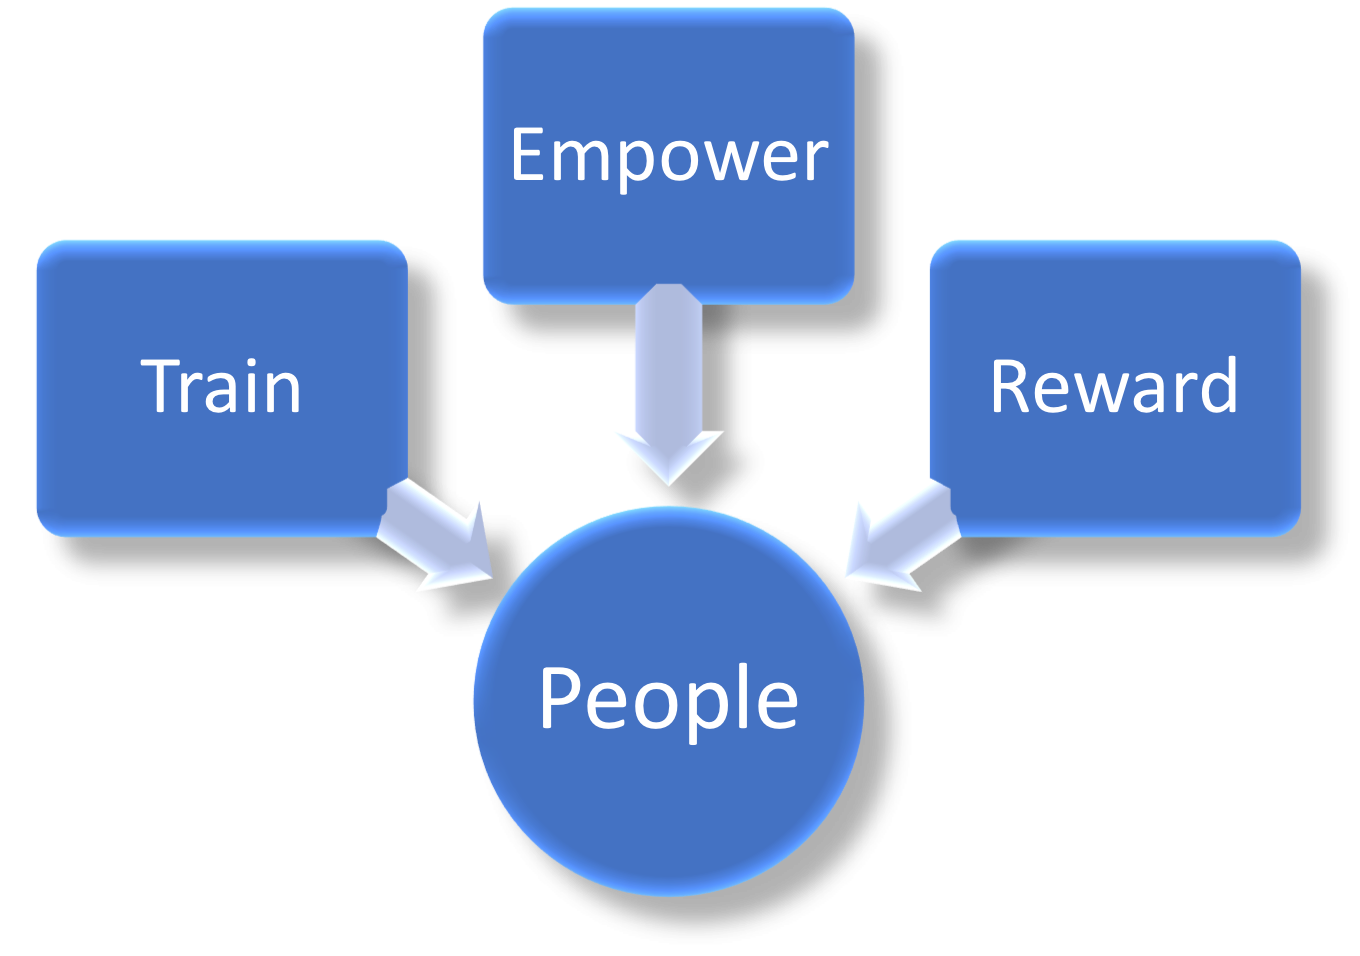 Train, Empower, Reward People diagram